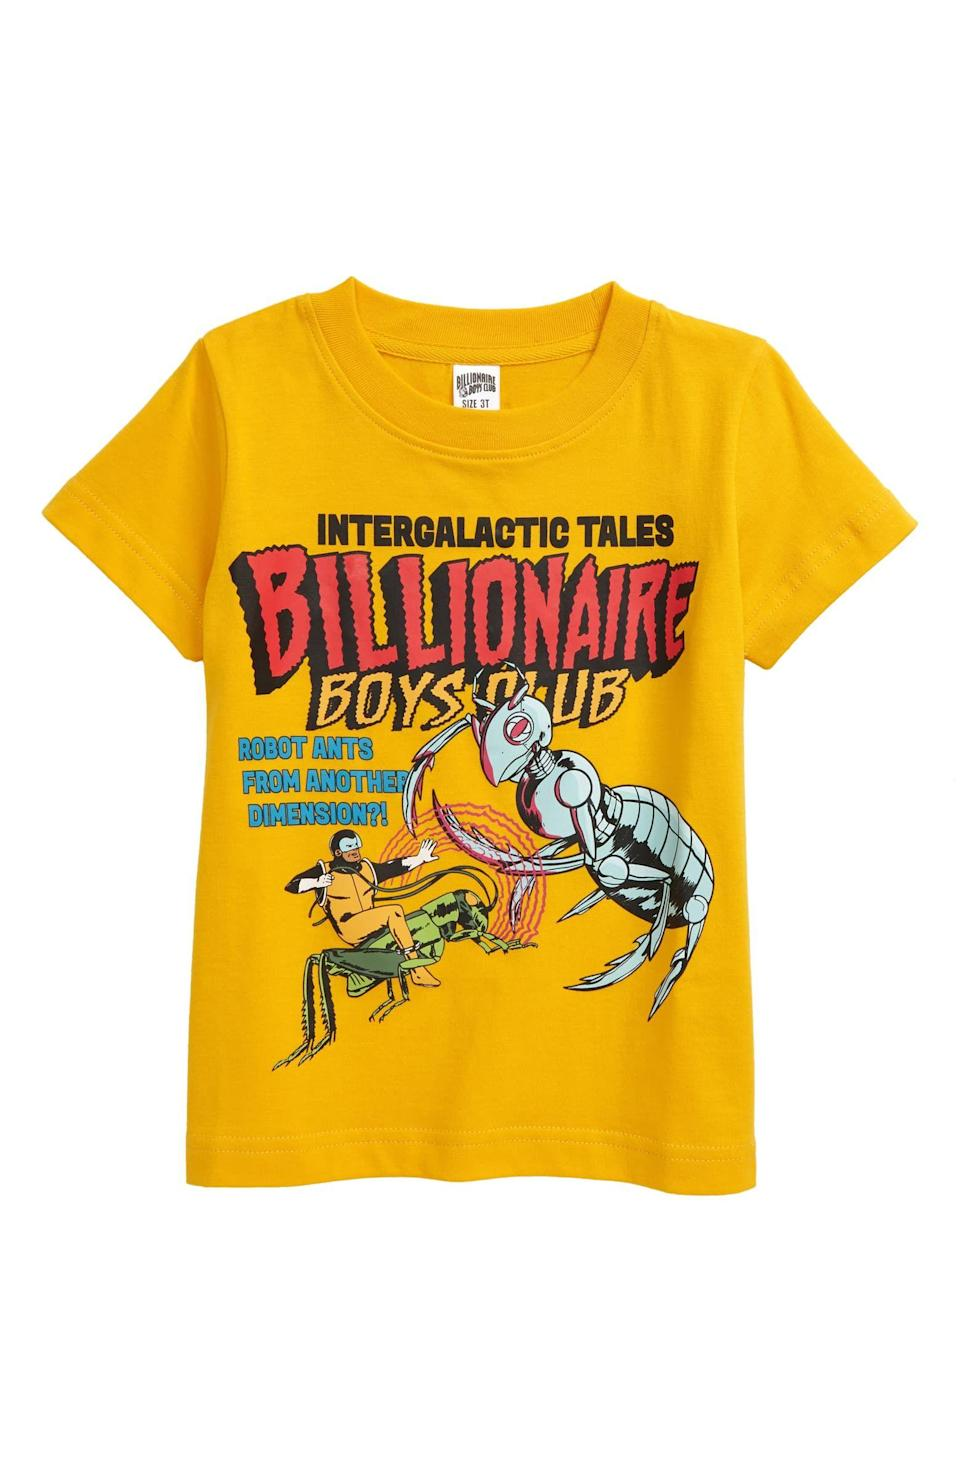 """<p><strong>Billionaire Boys Club</strong></p><p>fave.co</p><p><strong>$45.00</strong></p><p><a href=""""https://fave.co/3lLdgrx"""" rel=""""nofollow noopener"""" target=""""_blank"""" data-ylk=""""slk:Shop Now"""" class=""""link rapid-noclick-resp"""">Shop Now</a></p><p>Okay, a t-shirt may not seem like it's the most exciting gift, but when it features cool graphics like this one, trust me, it'll become your guy's favorite. The comic-inspired graphic will give off vintage vibes once it's been through the washer a few times. </p>"""